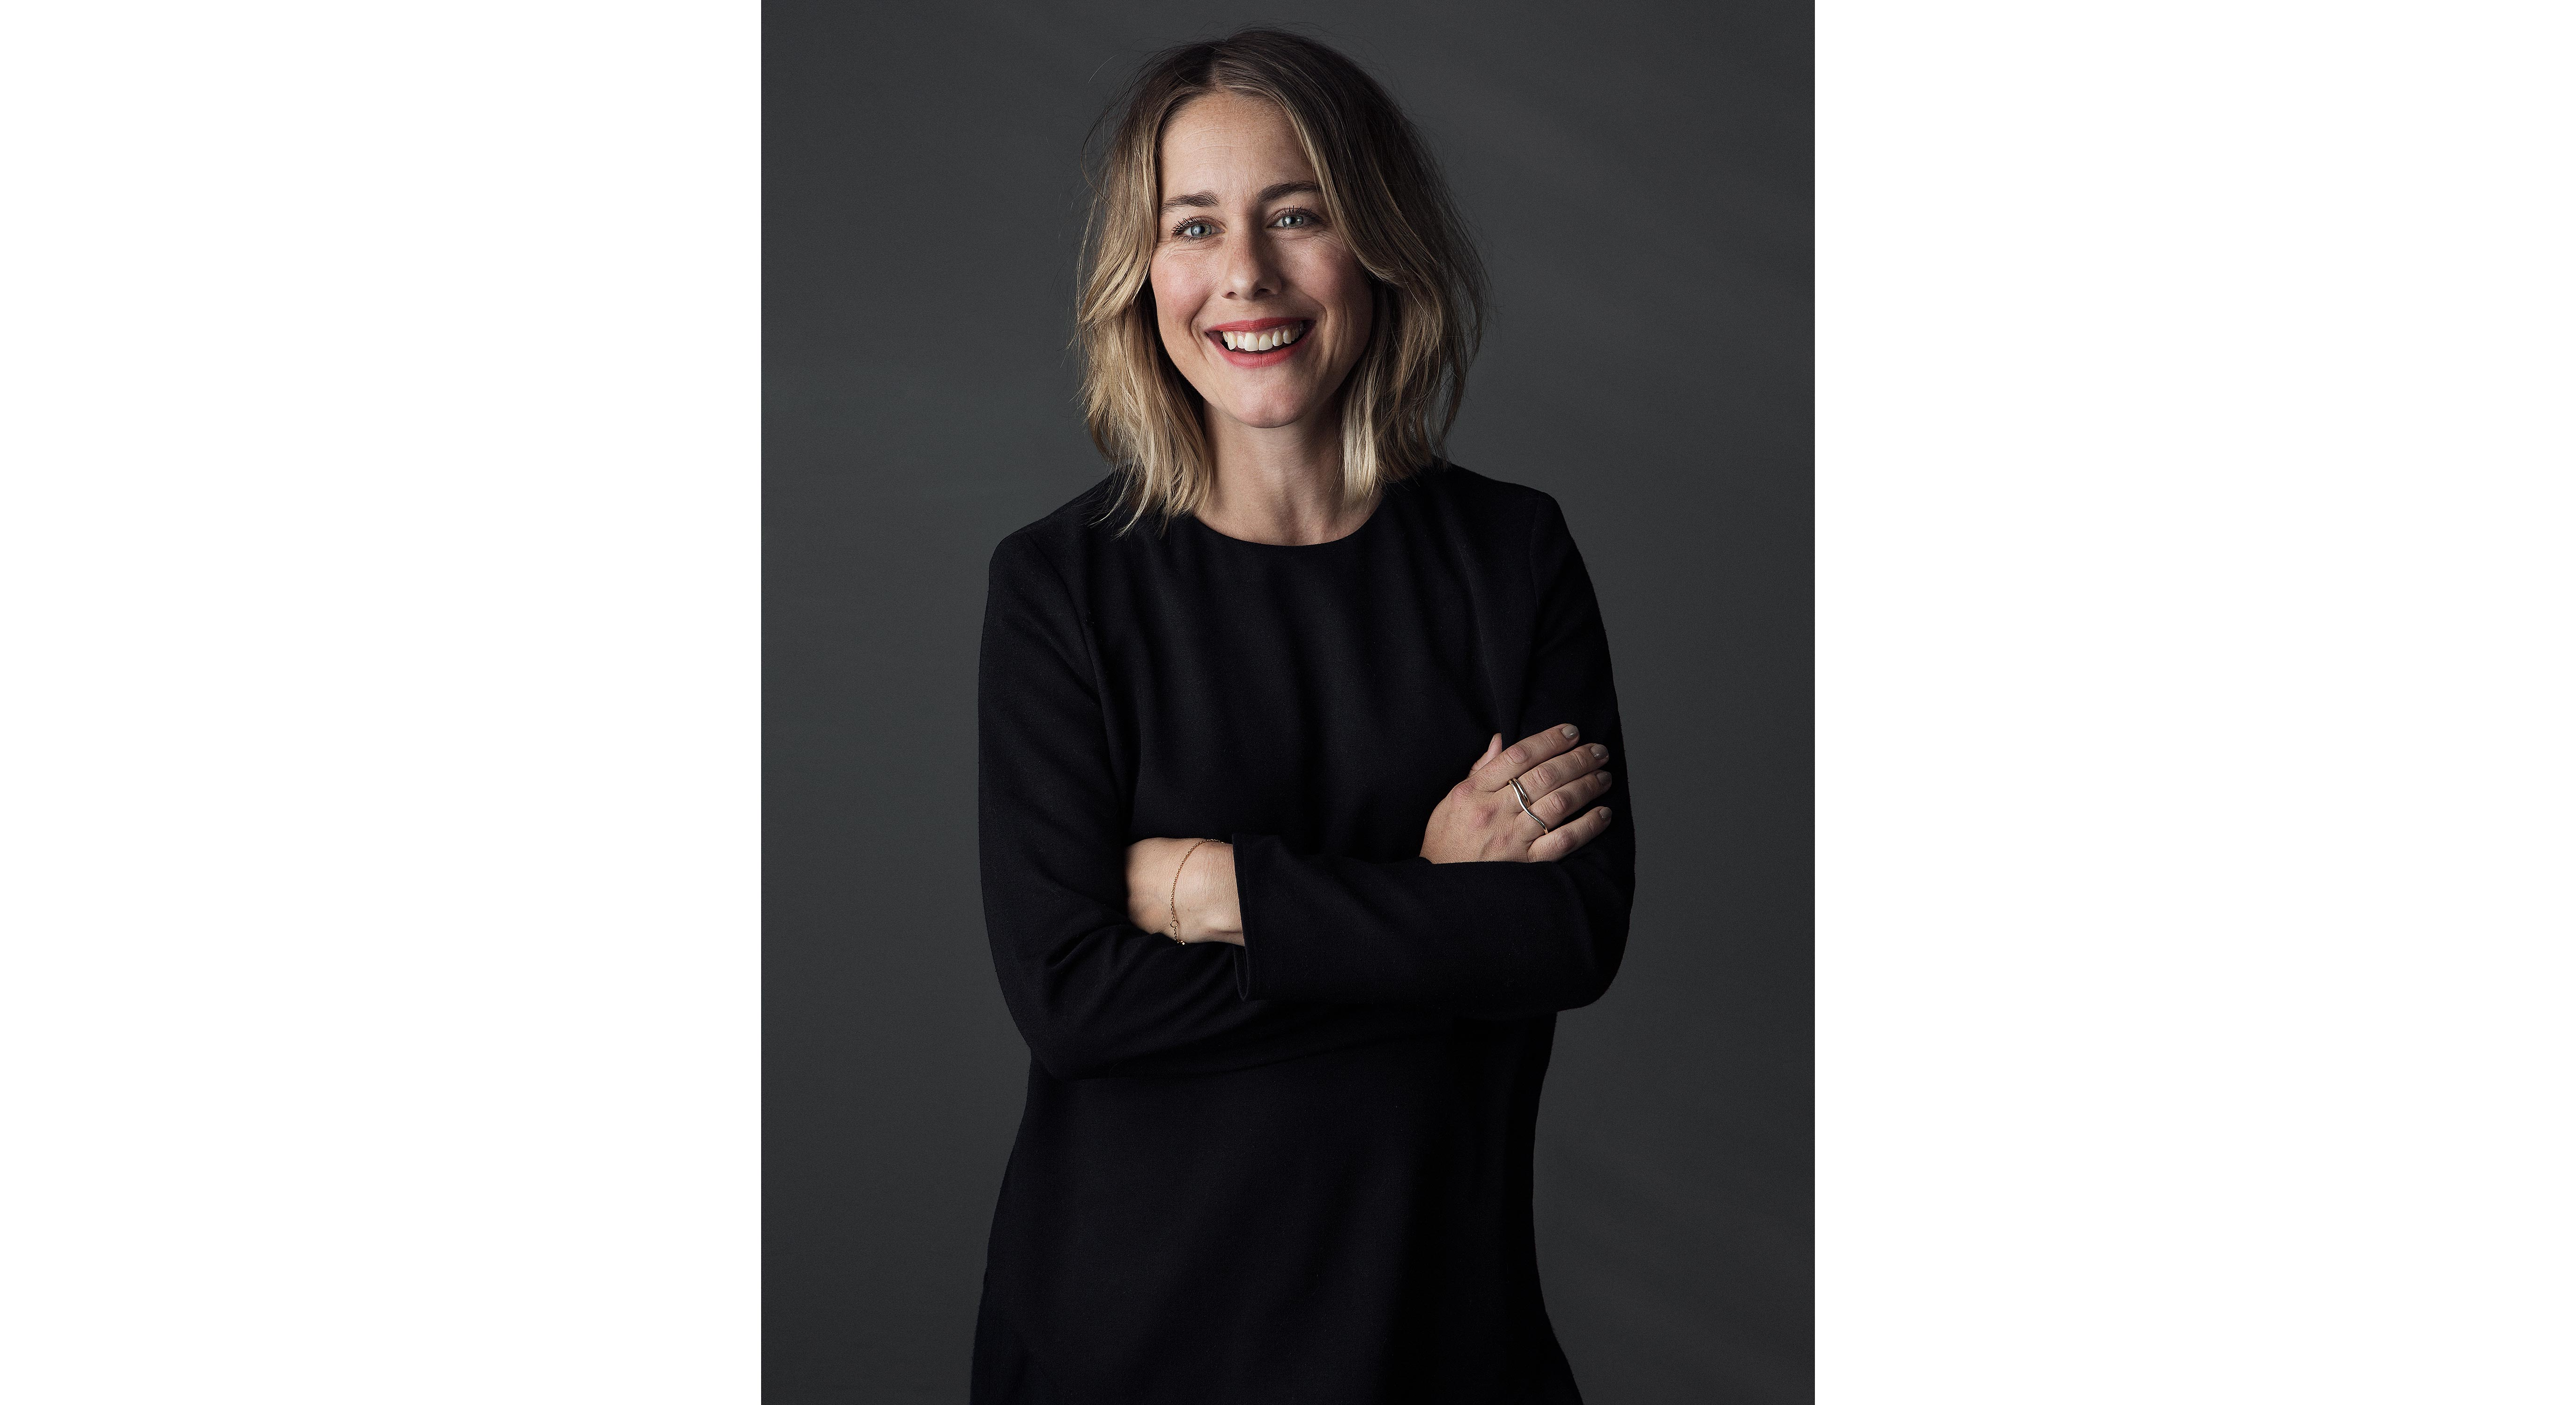 3 questions with WeSC creative director Carin Wester